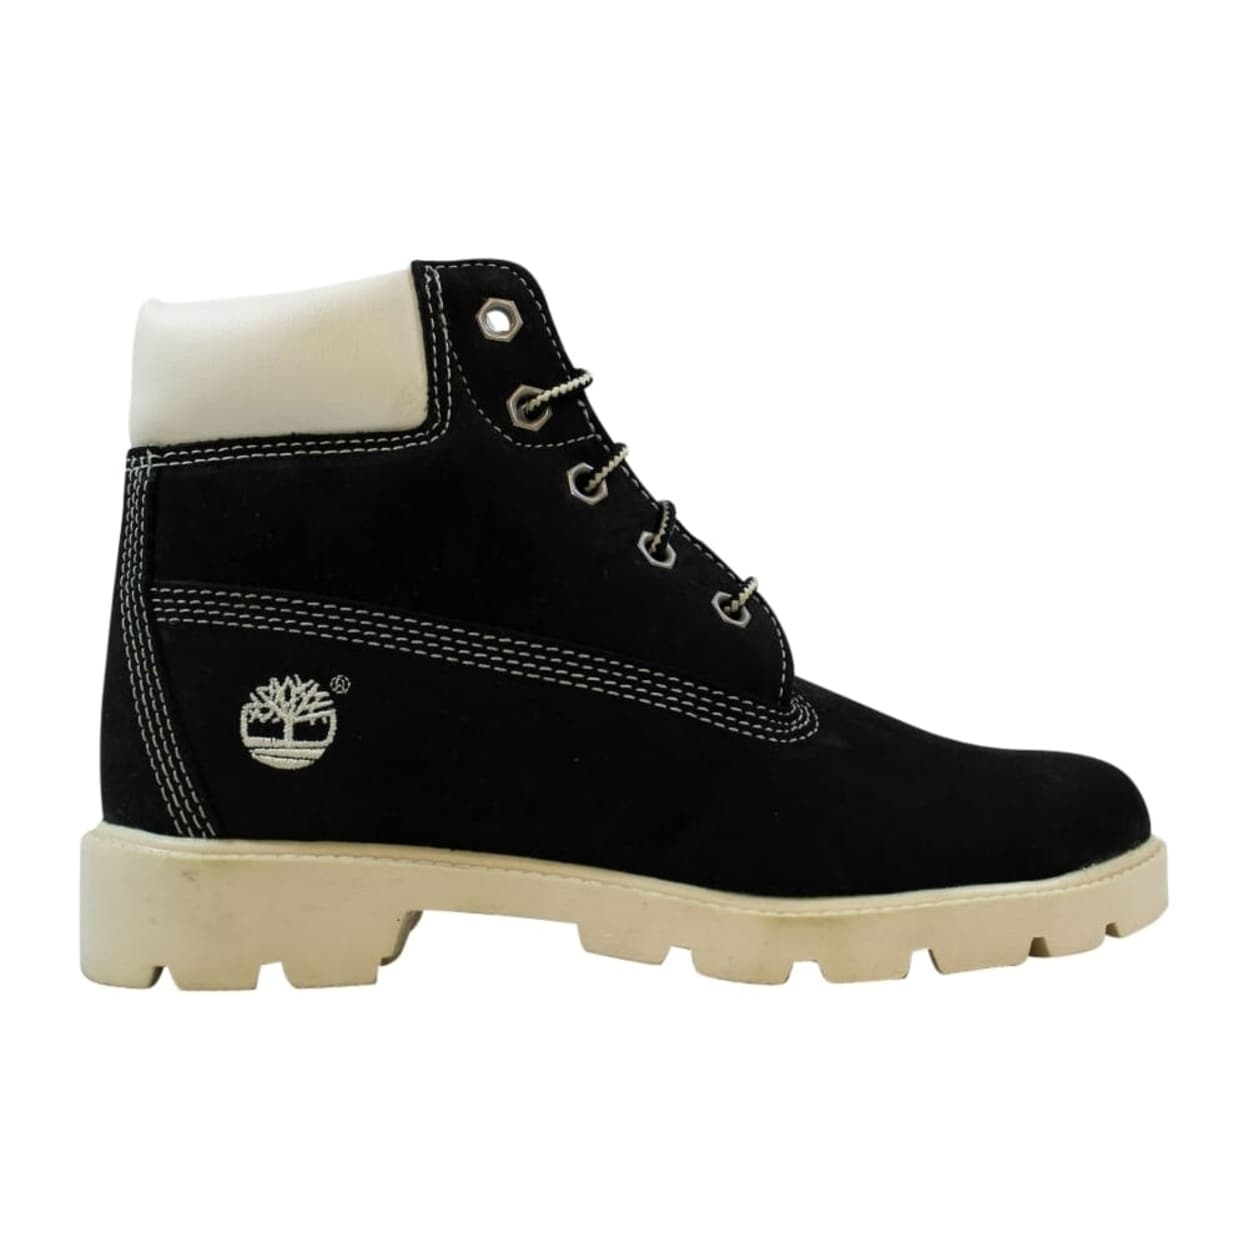 Shop Timberland 6 Inch Boot Black 19977